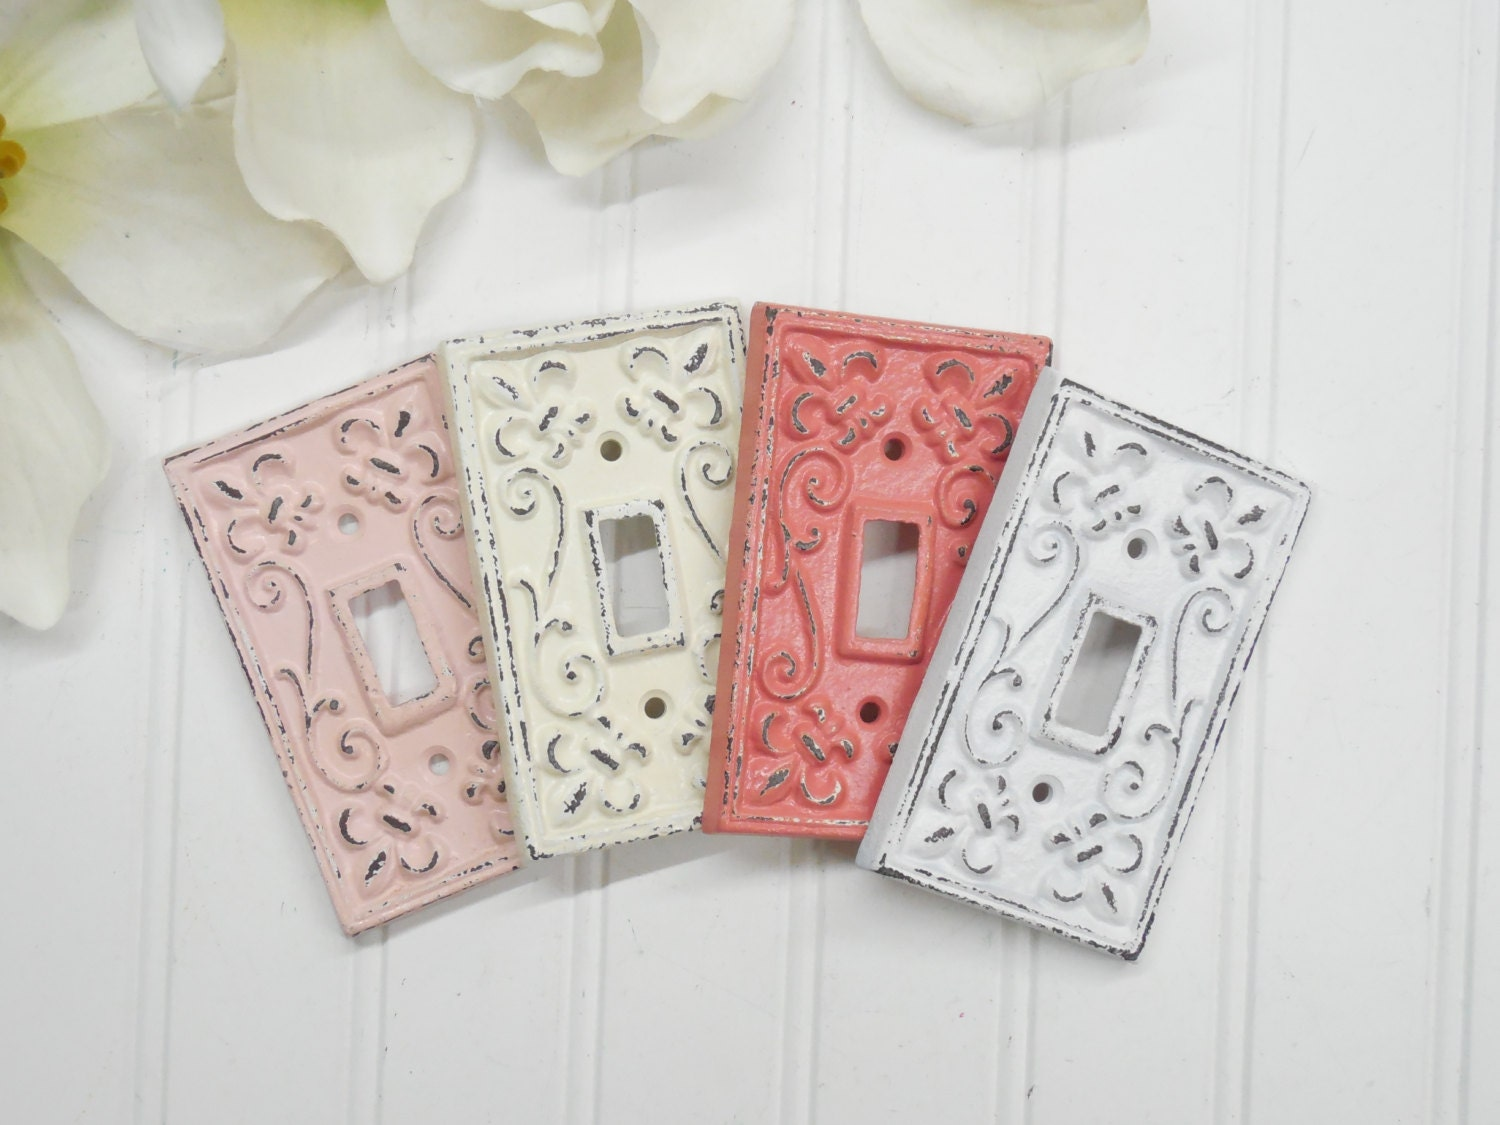 Light switch plate covers decorative - Light Switch Cover Nursery Wall Decor Light Switch Plate Decorative Cover Outlet Cover Shabby Chic Metal Plate Cover